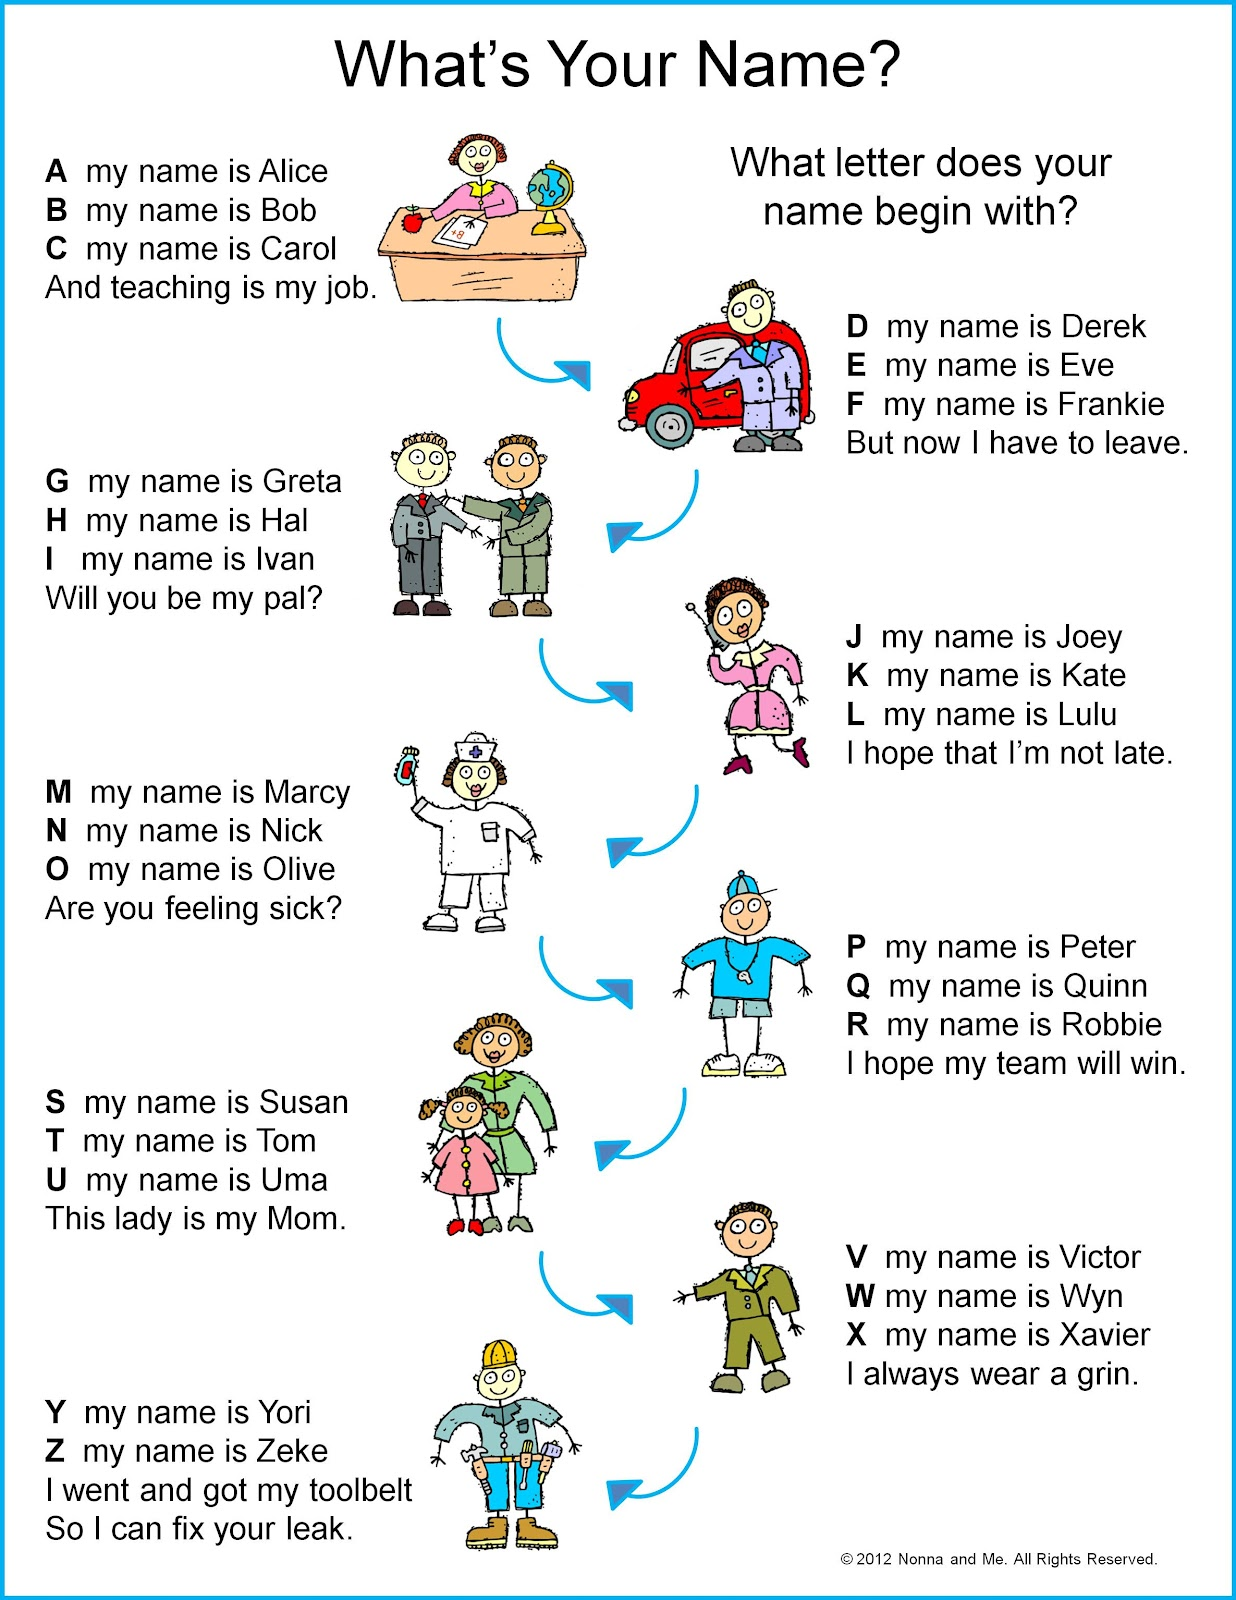 Nonna and Me February 2012 – What is Worksheet